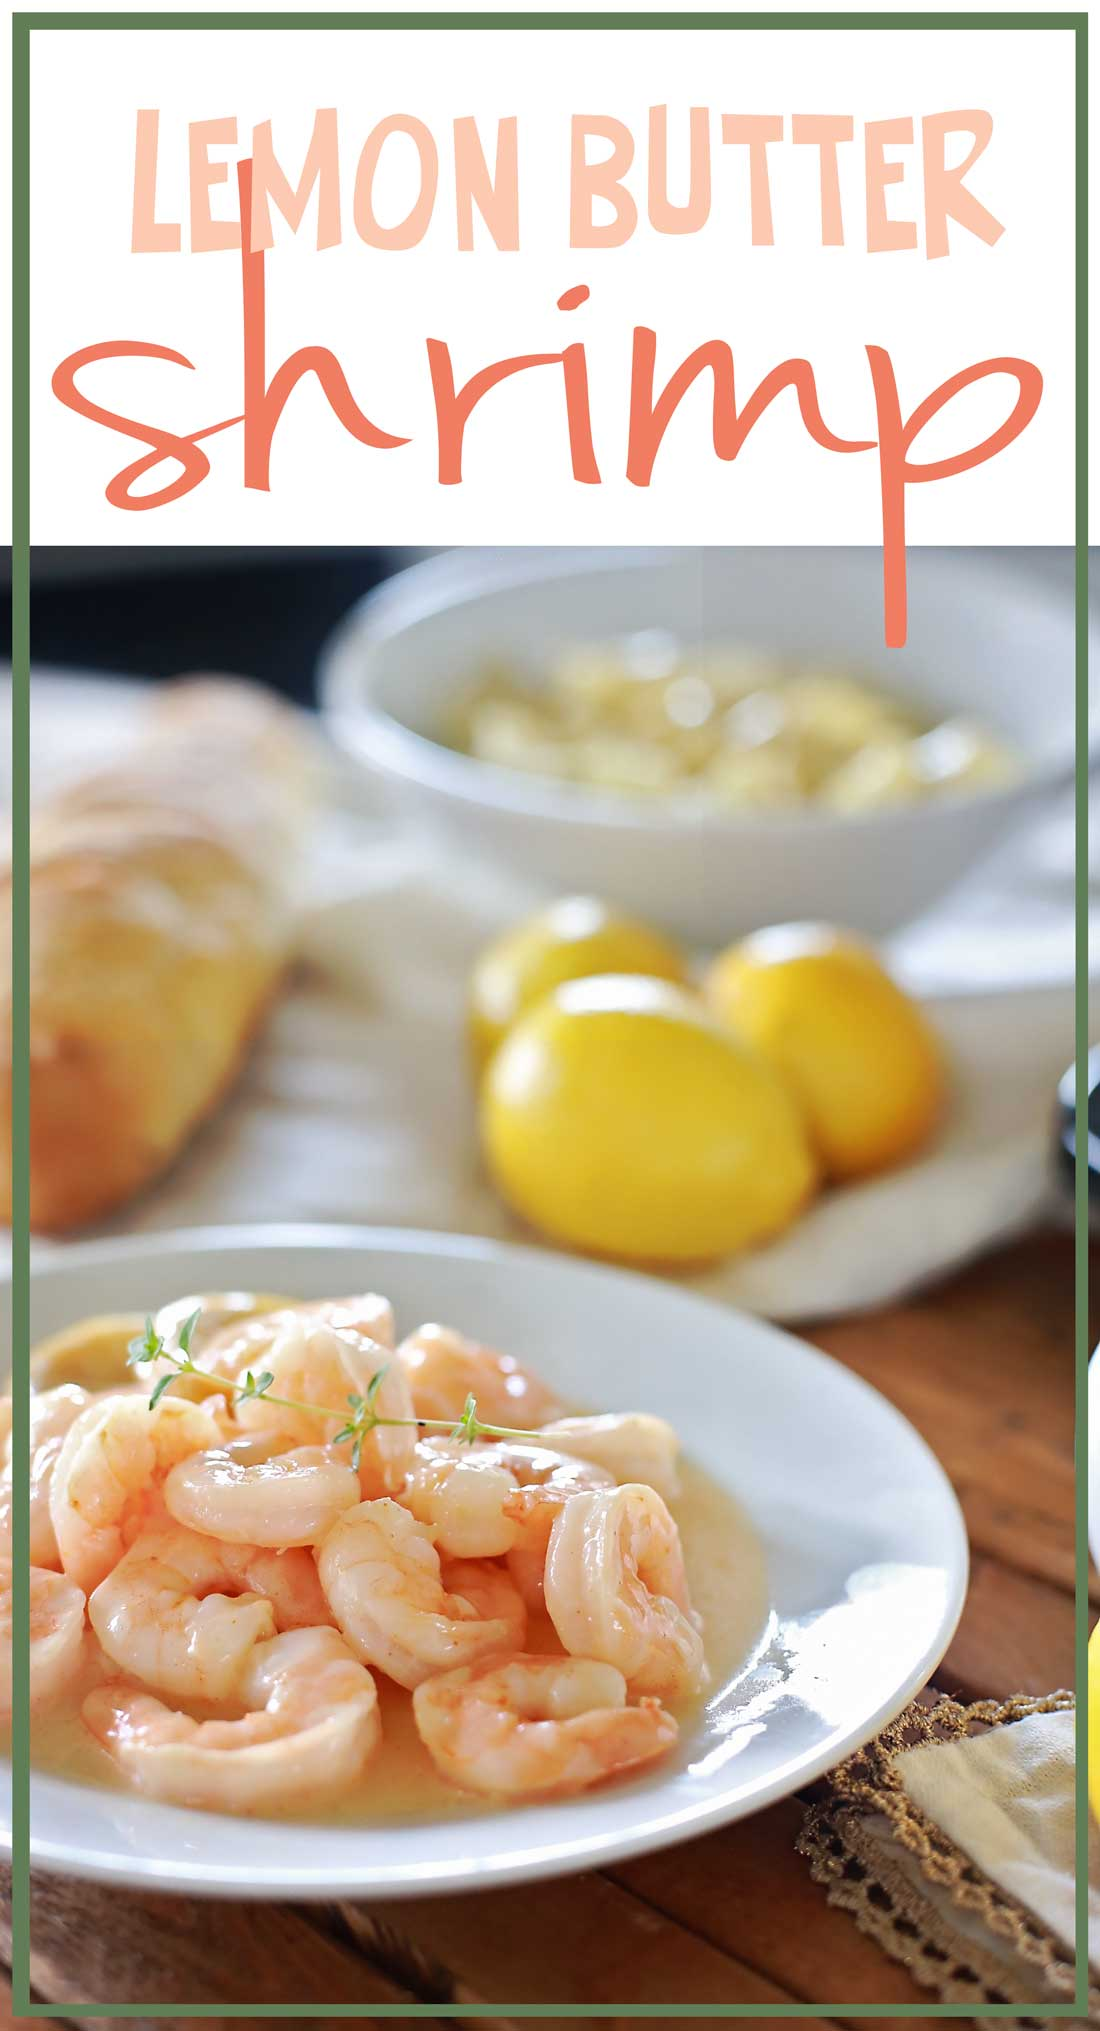 Life changing GOOD lemon-butter shrimp recipe by Flirting with Flavor!